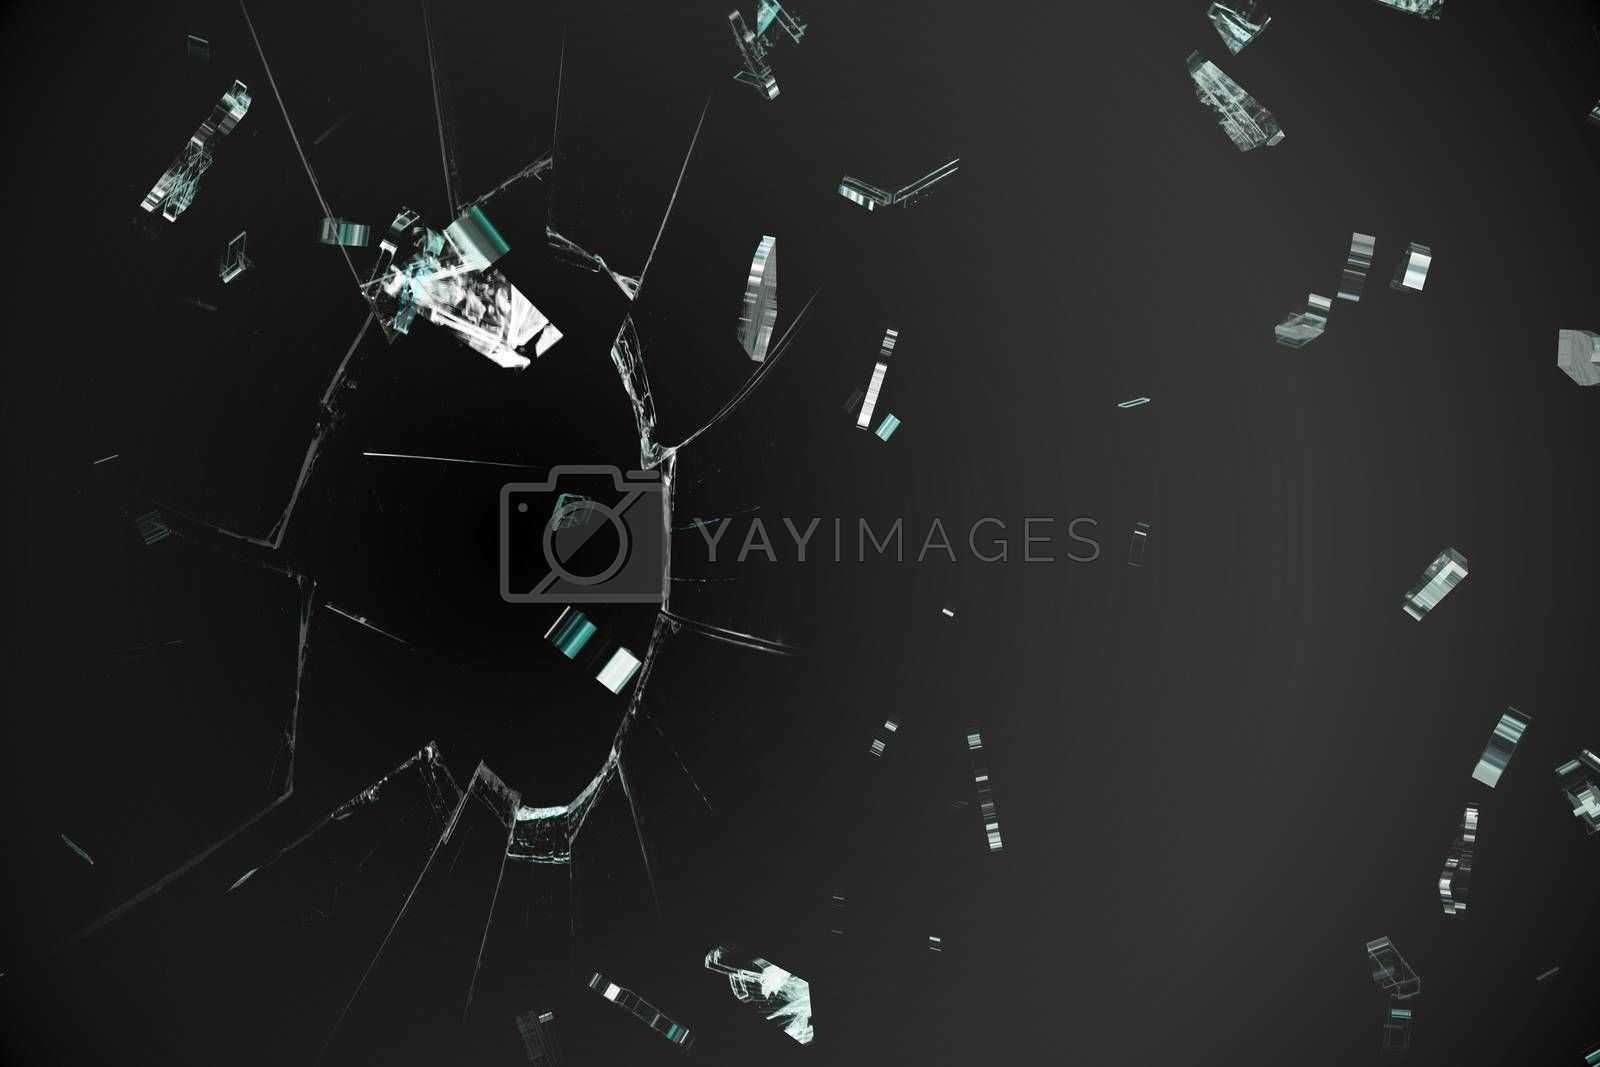 Royalty free image of Shattered glass on black background by Wavebreakmedia